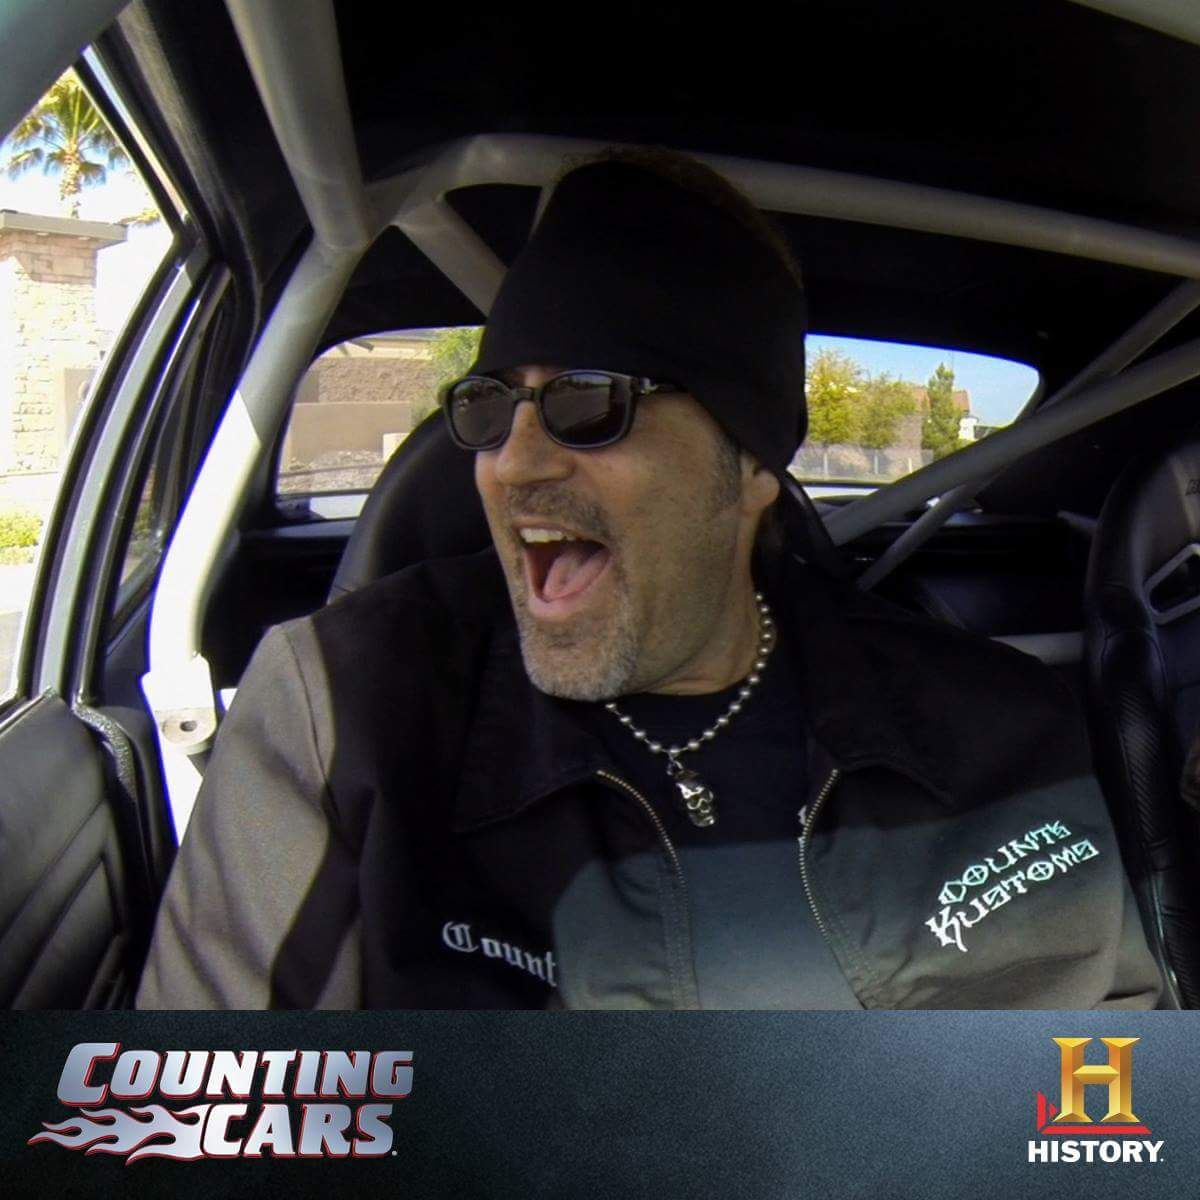 Pin by Macy Neeley on Counting Cars Counting cars